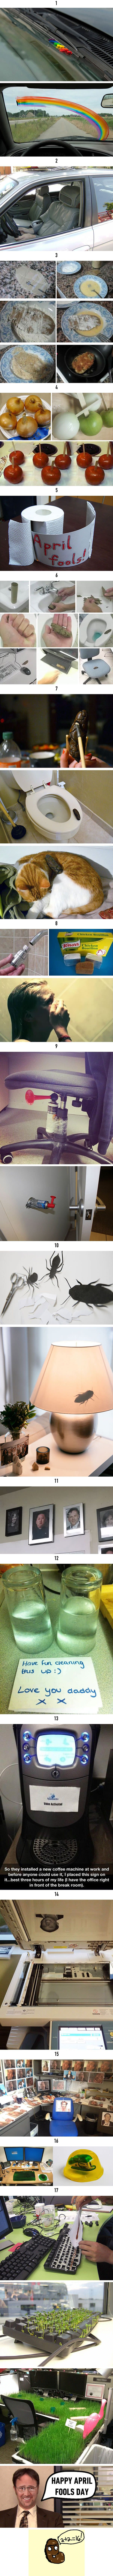 17 April Fools' Day ideas that are actually unforgivable - 9GAG